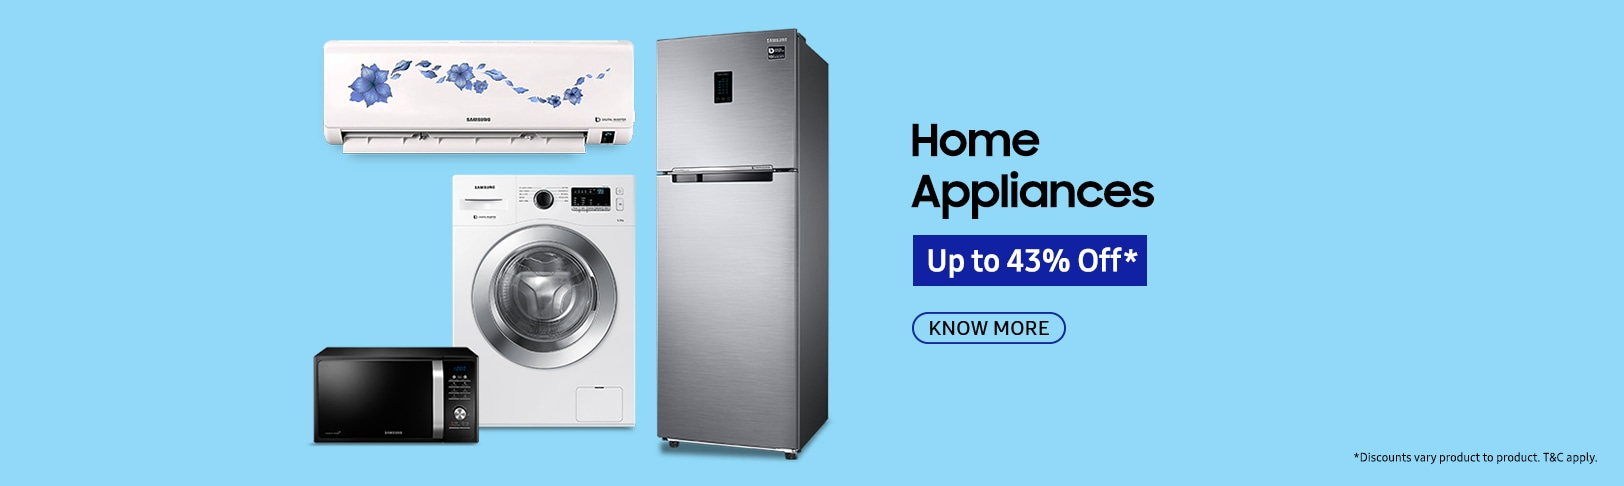 Up to 43% Off on Samsung Home Appliances